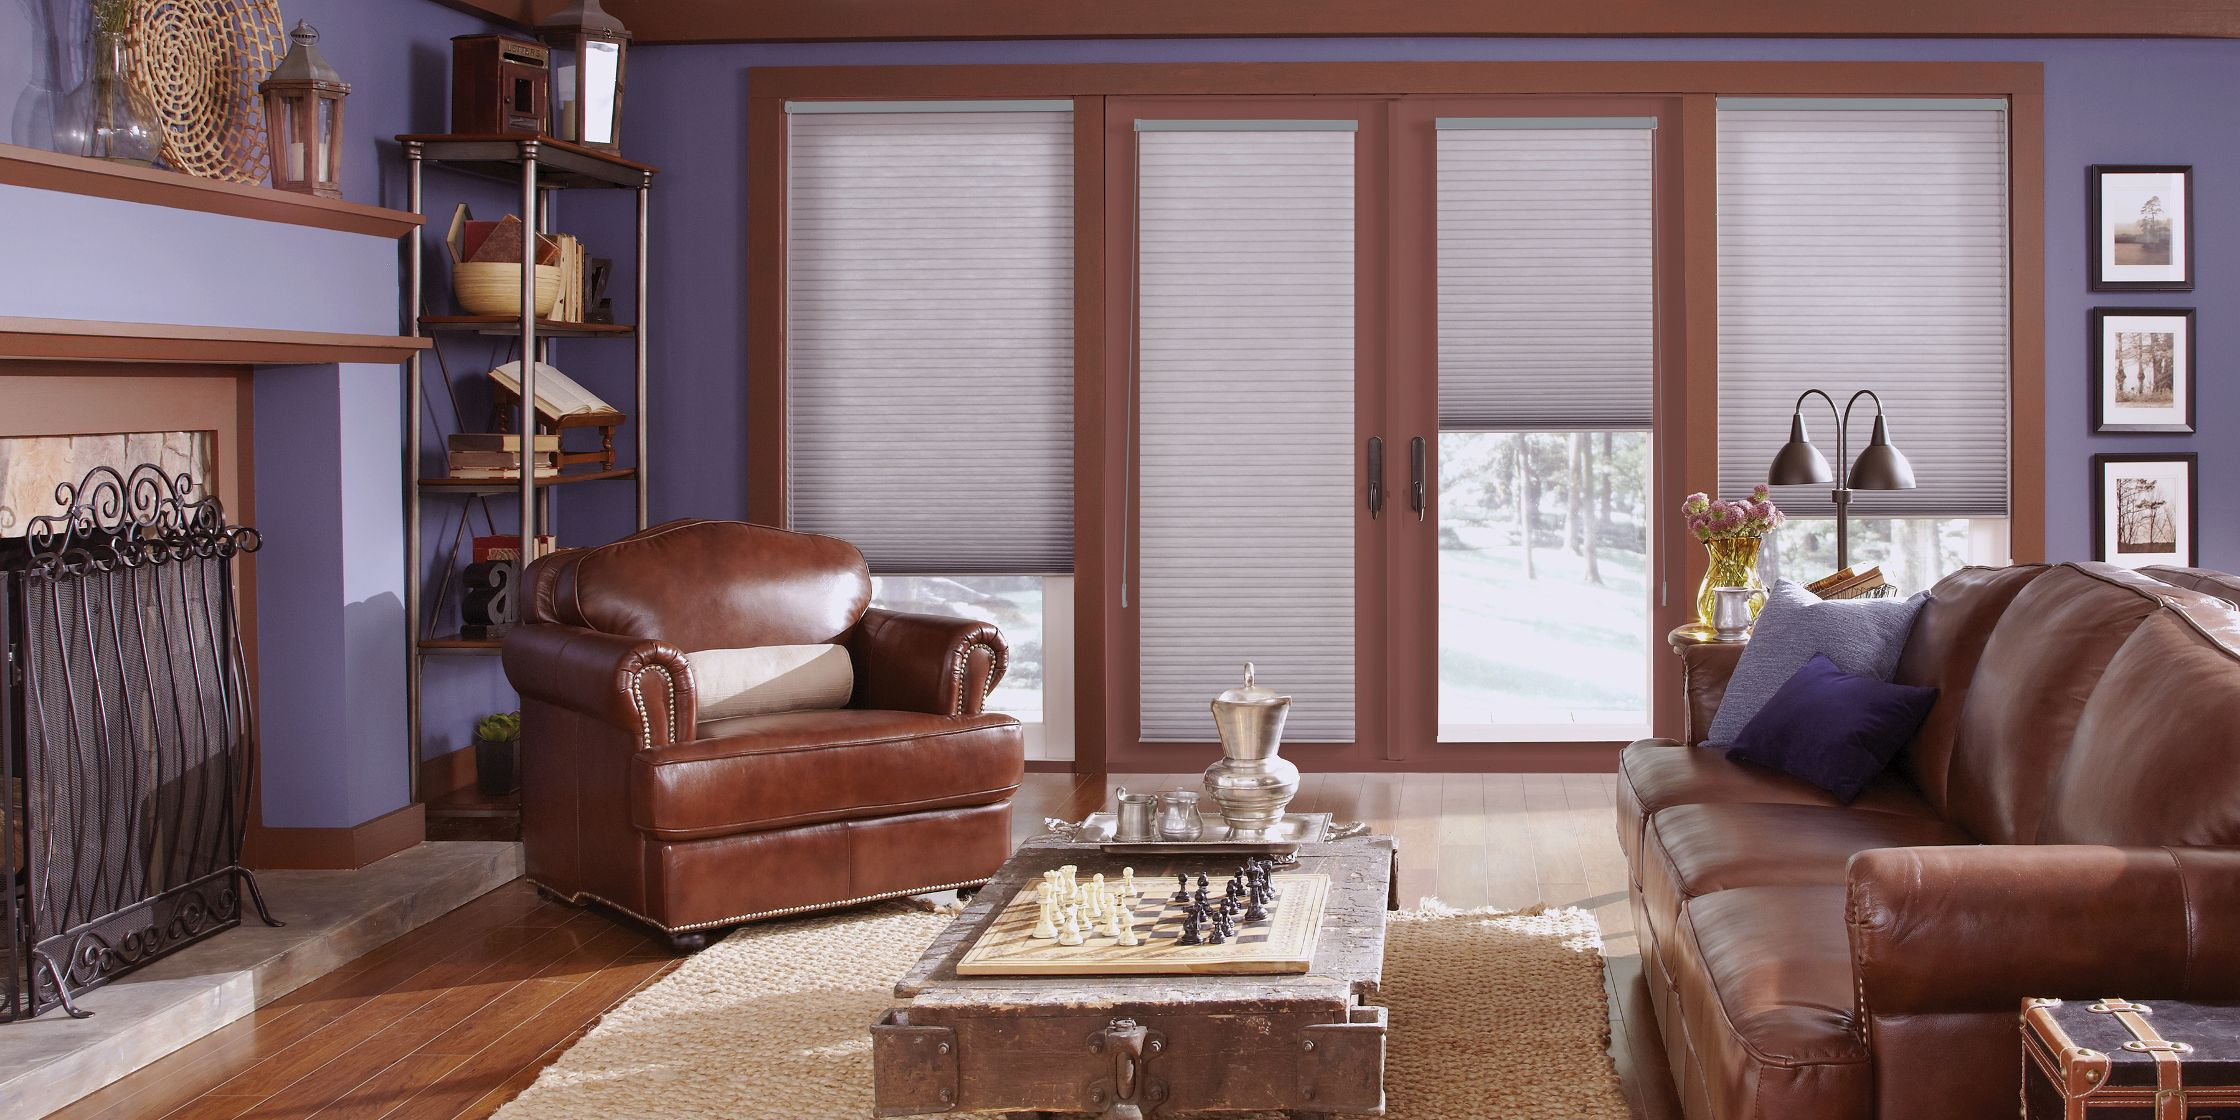 Inside mounting of blinds and shades offers a clean, stylish look